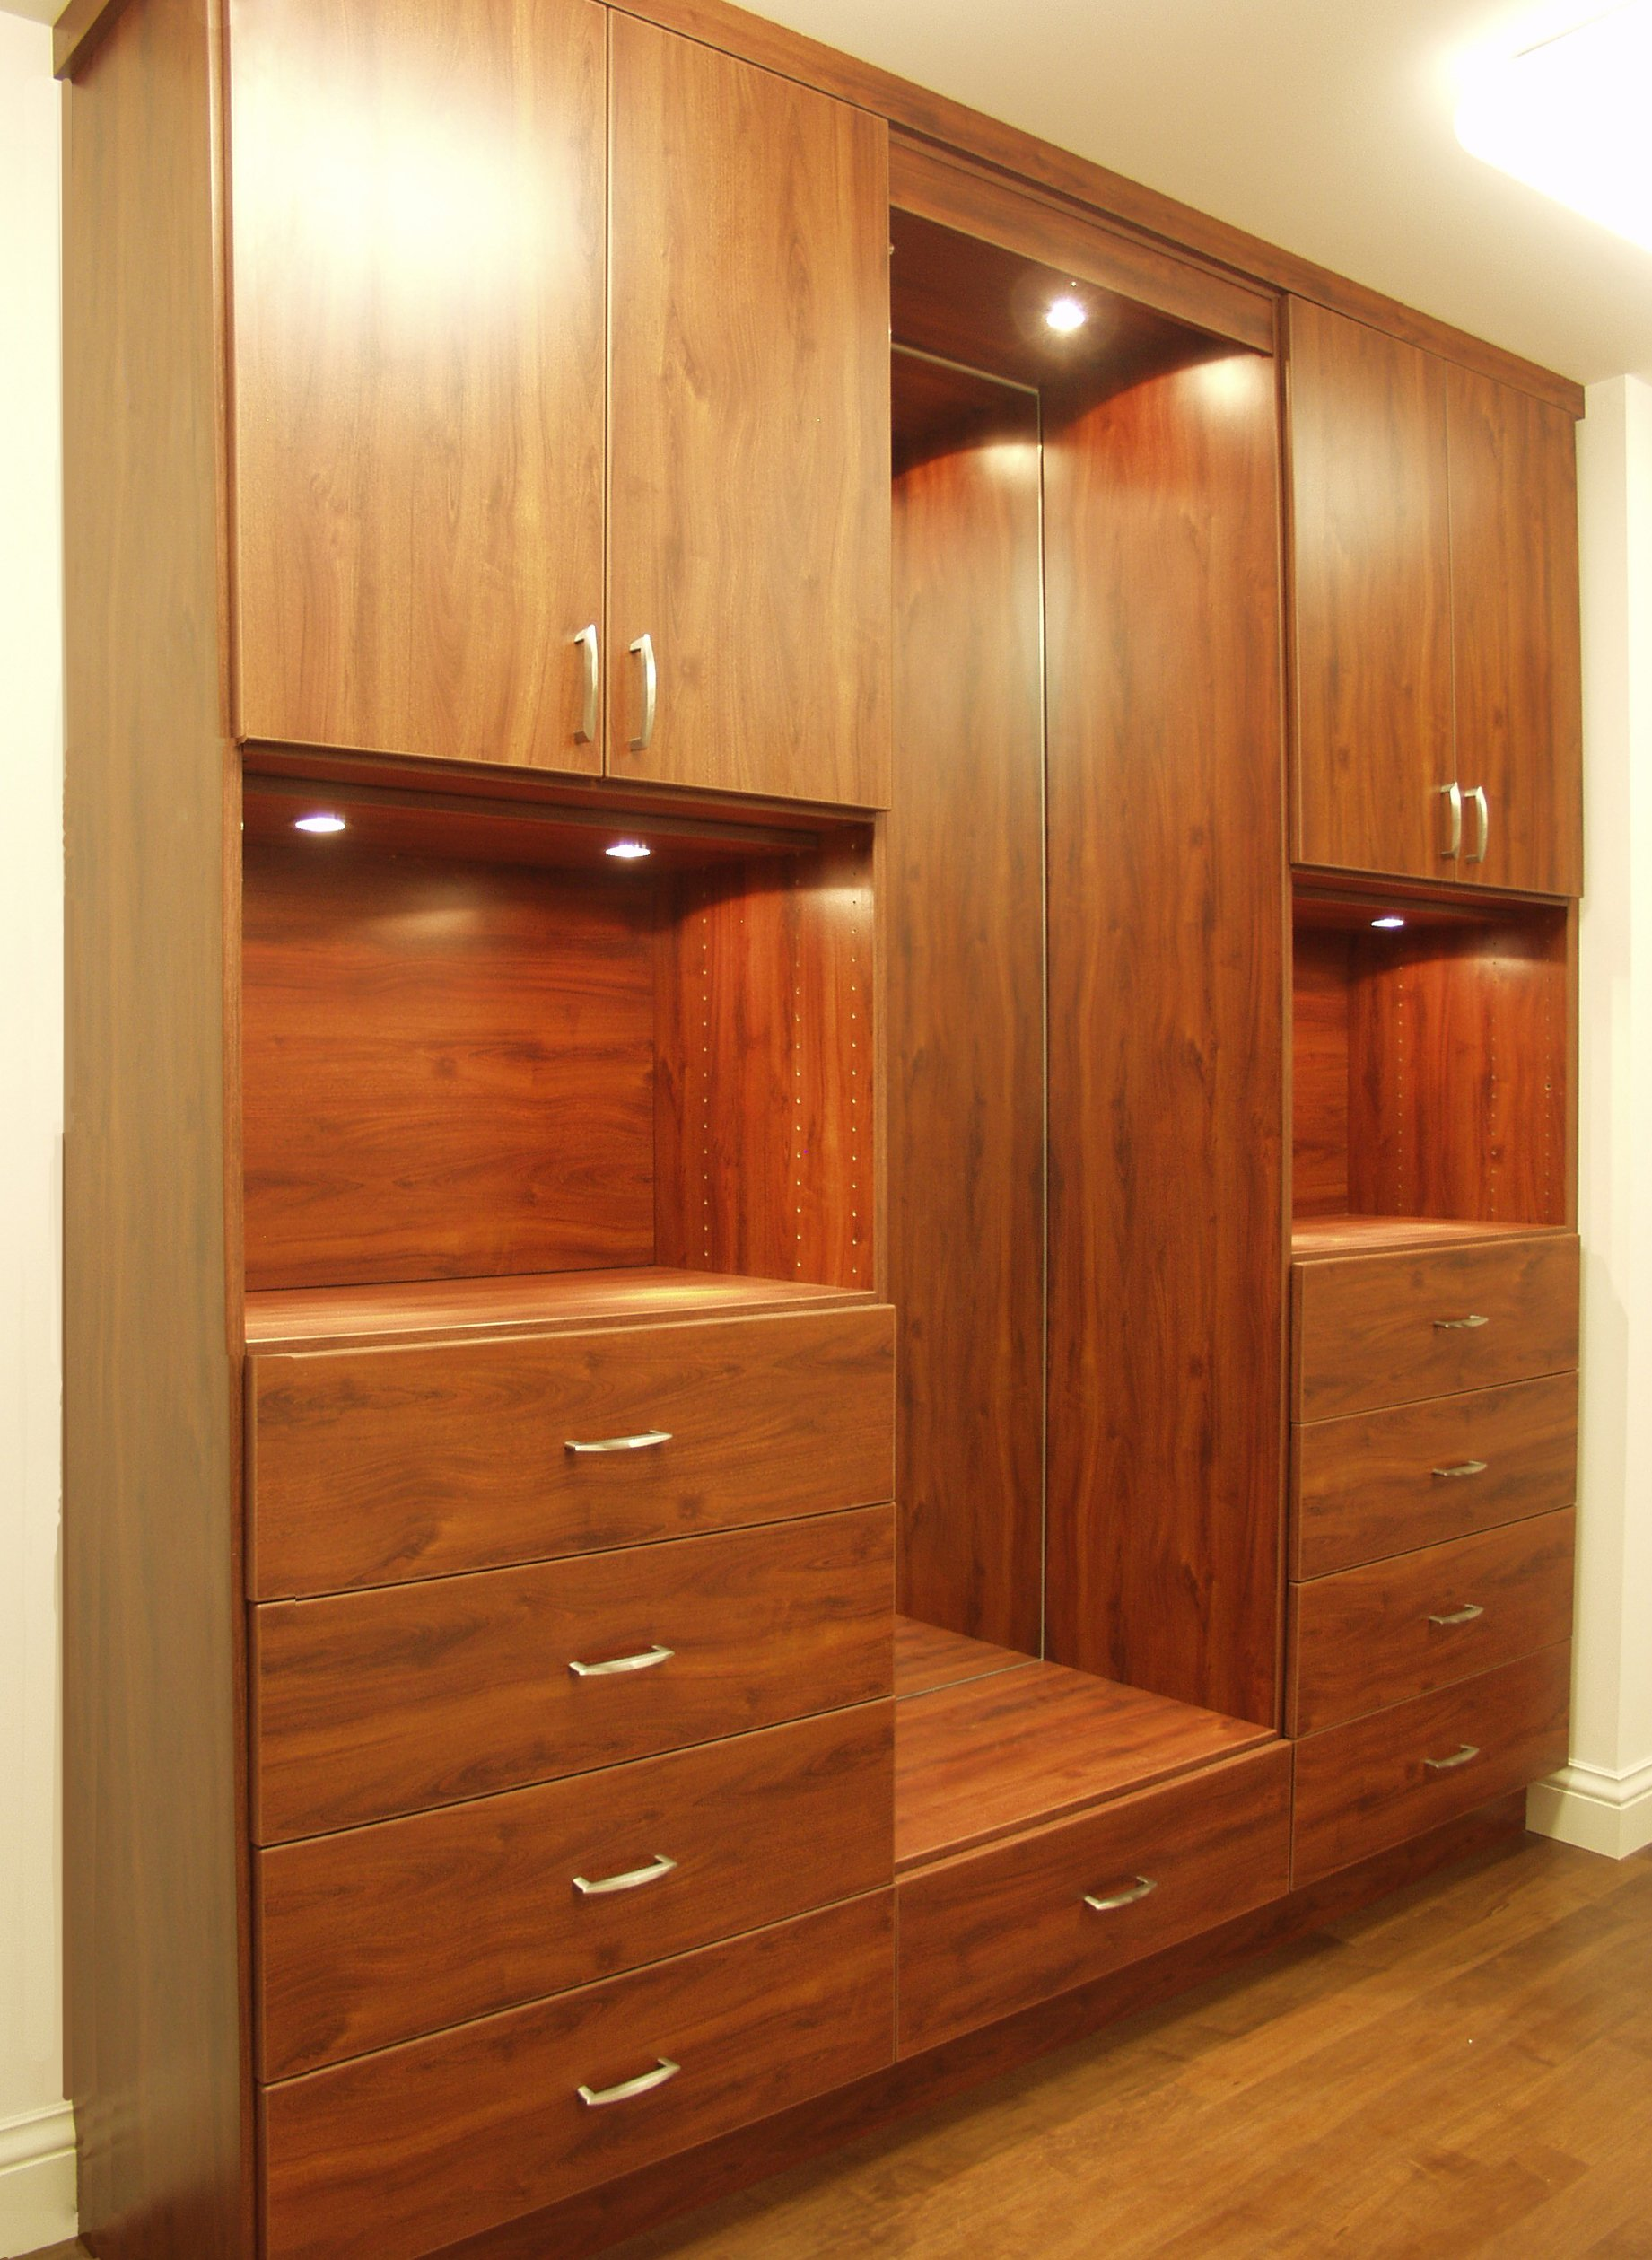 Featherstone Cabinetry & Design image 6